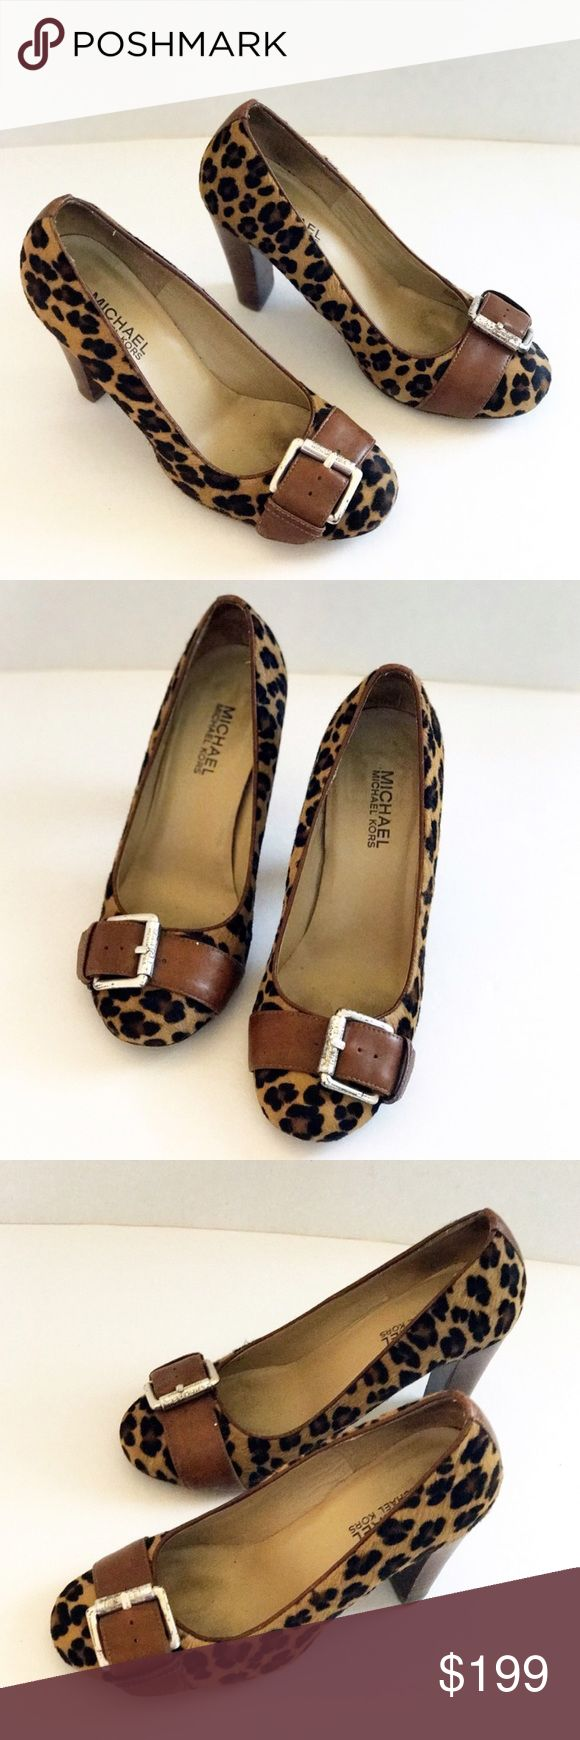 Michael Kors calf hair leopard print pumps Micheal Kors calf hair leopard print heels with front buckle embellishment and thick heels. Calf hair feels awesome and looks amazing! Leather upper and outsold. Size 5.5 Michael Kors Shoes Heels